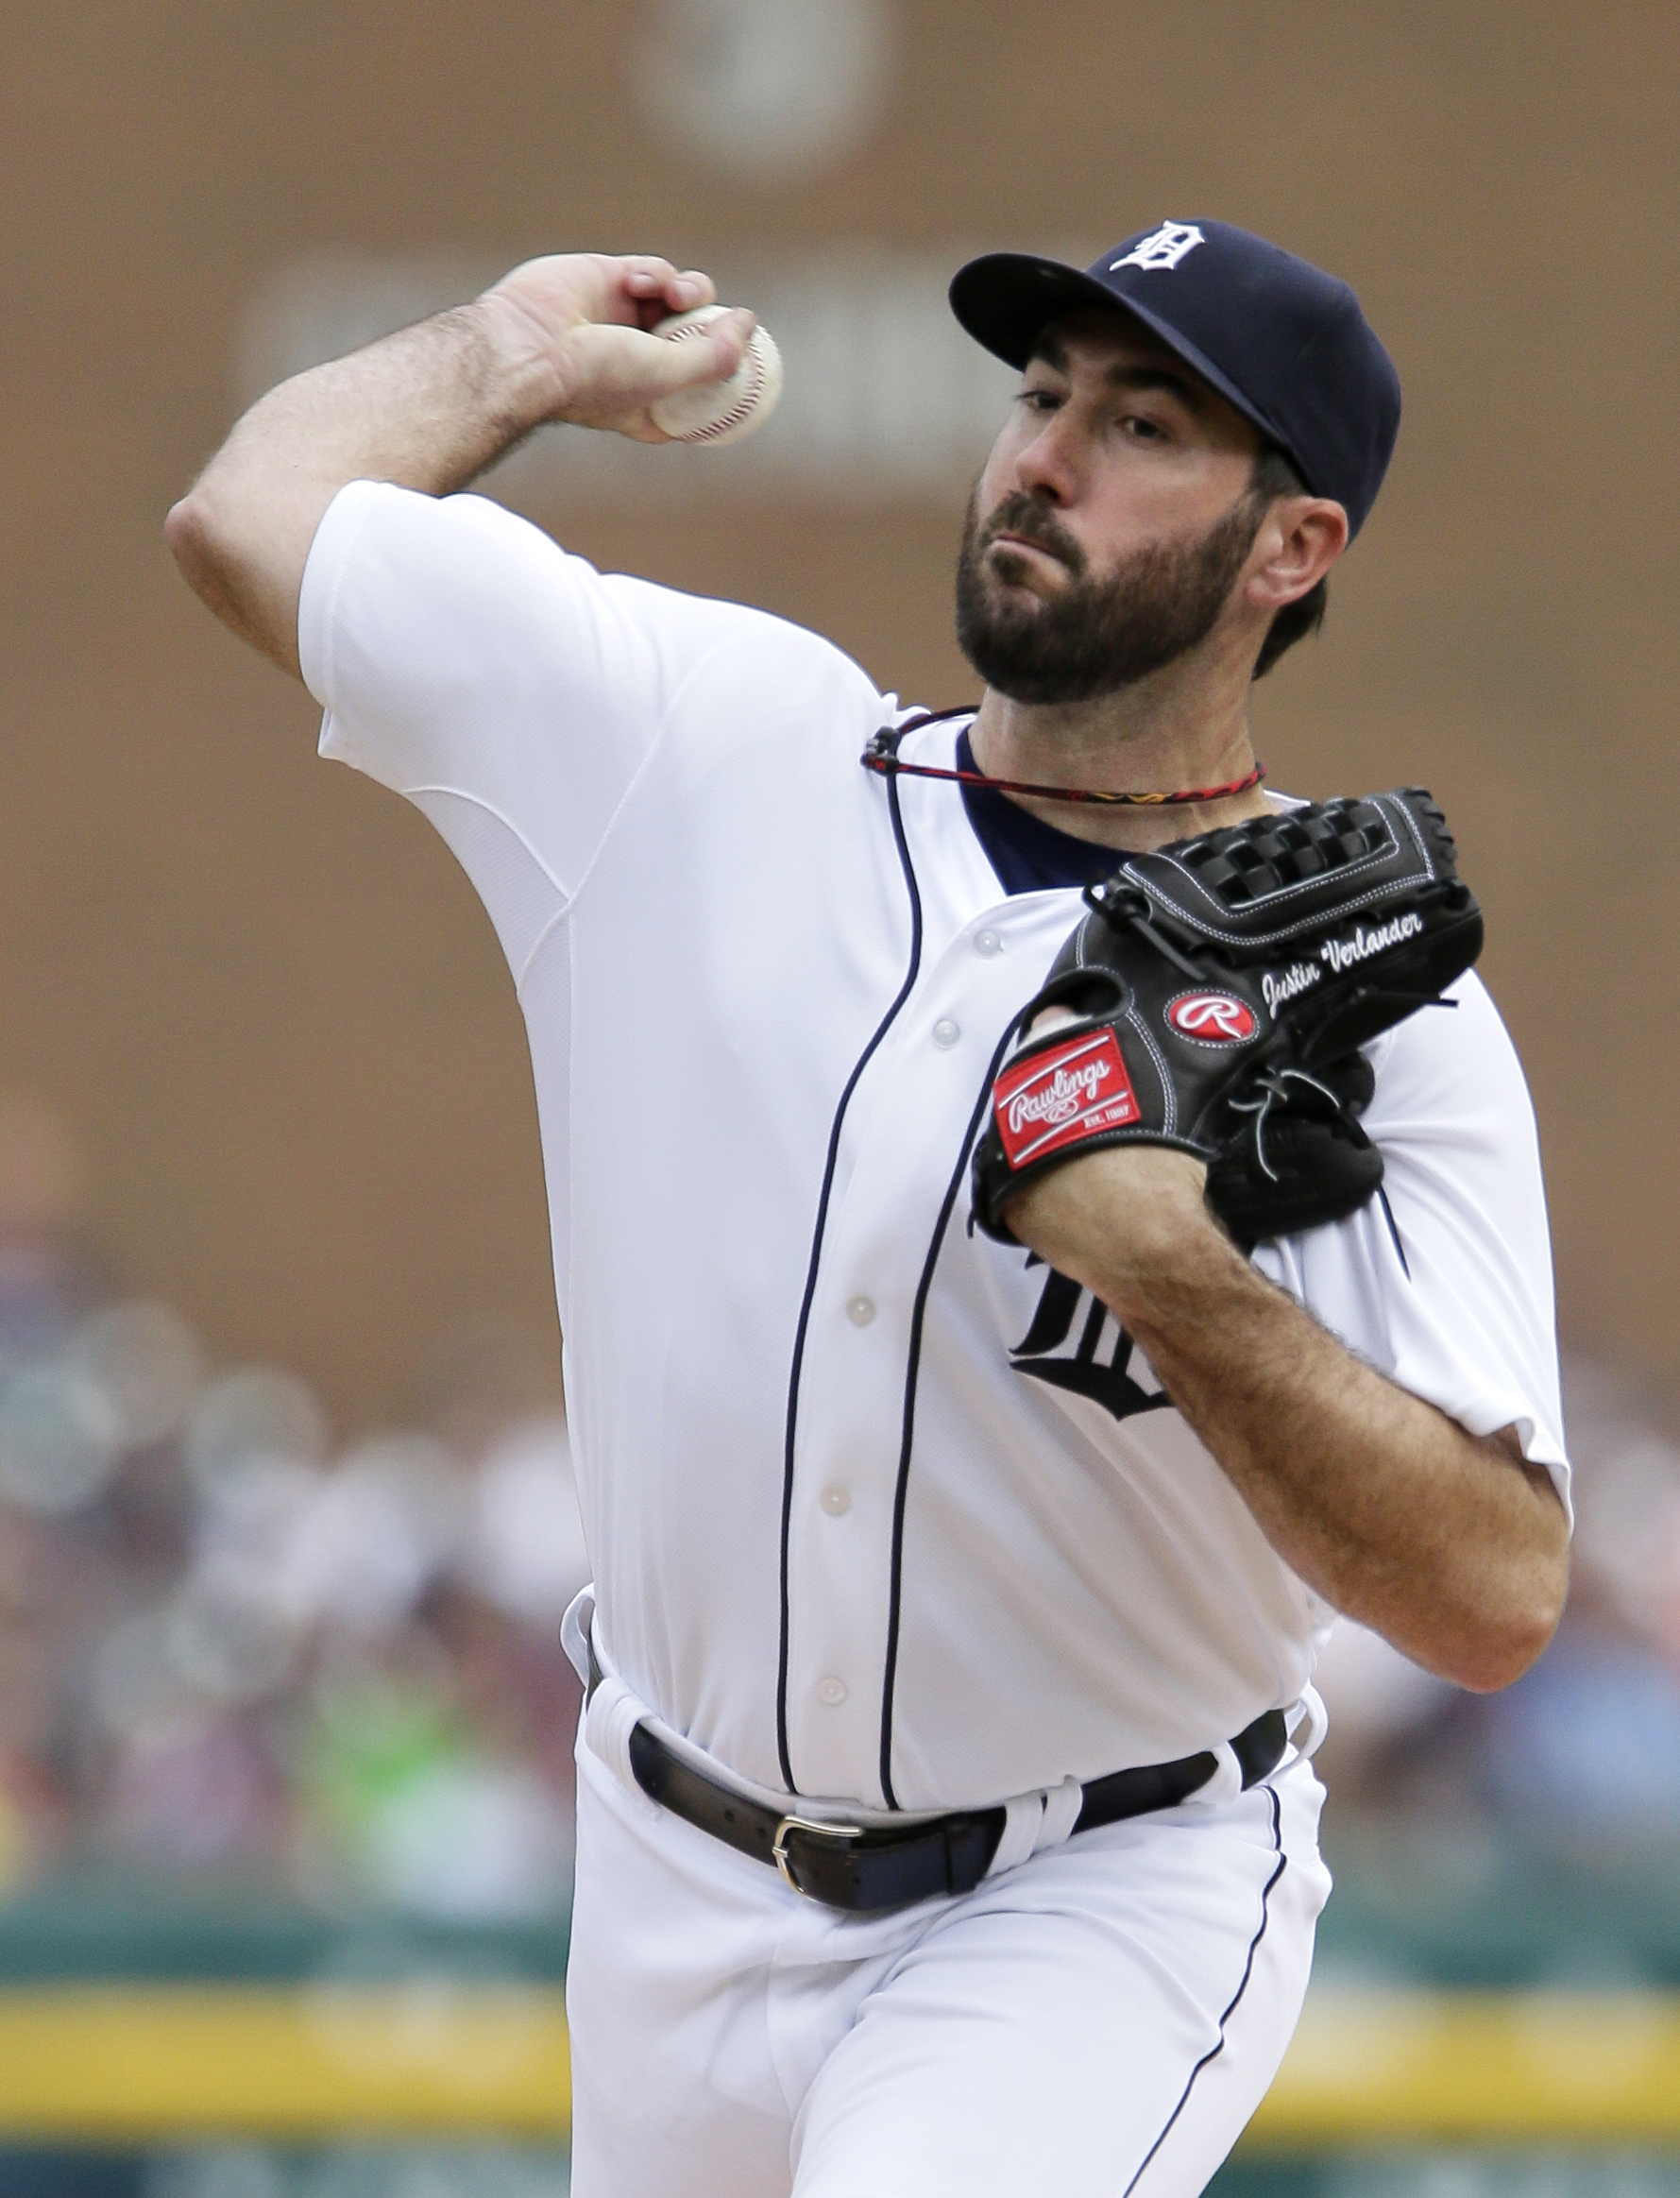 Detroit Tigers pitcher Justin Verlander delivers against the Cleveland Indians during the first inning of a baseball game Saturday, June 13, 2015, in Detroit. (AP Photo/Duane Burleson)